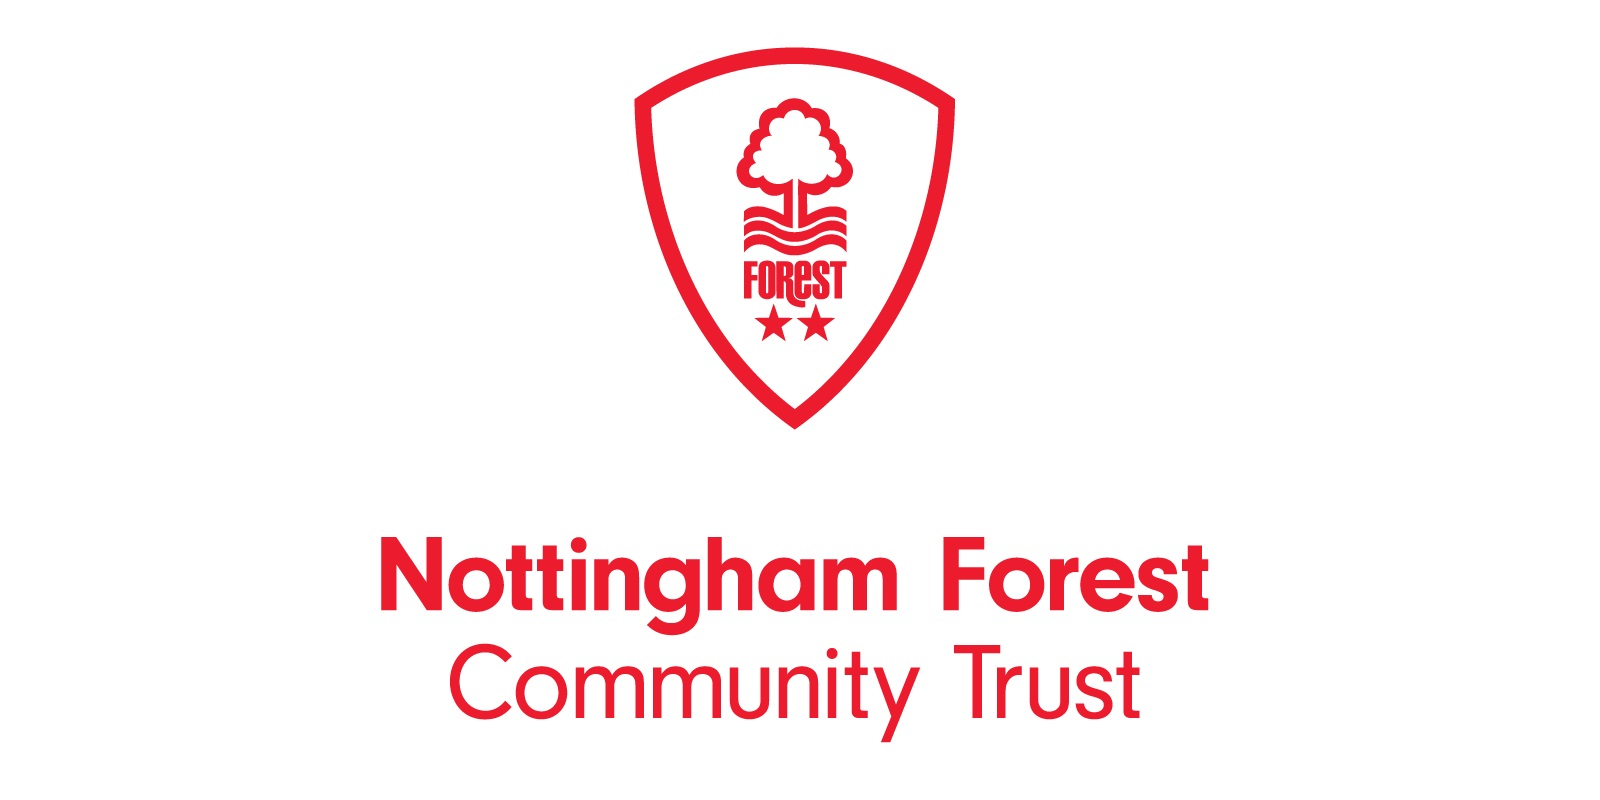 Nottingham Forest Community Trust